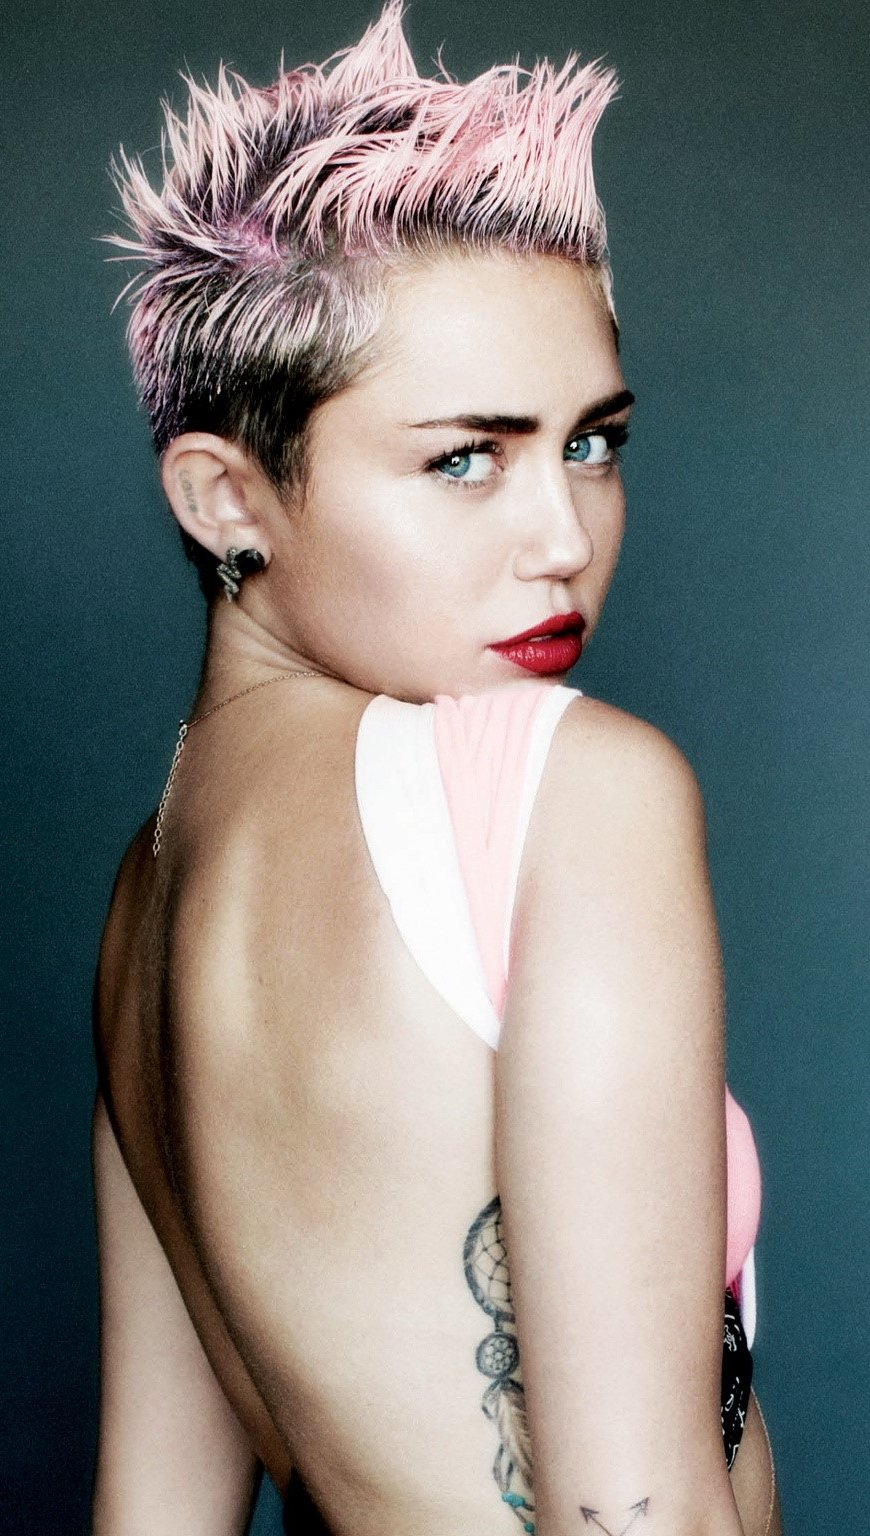 Wallpaper Miley Cyrus for V magazine Vertical